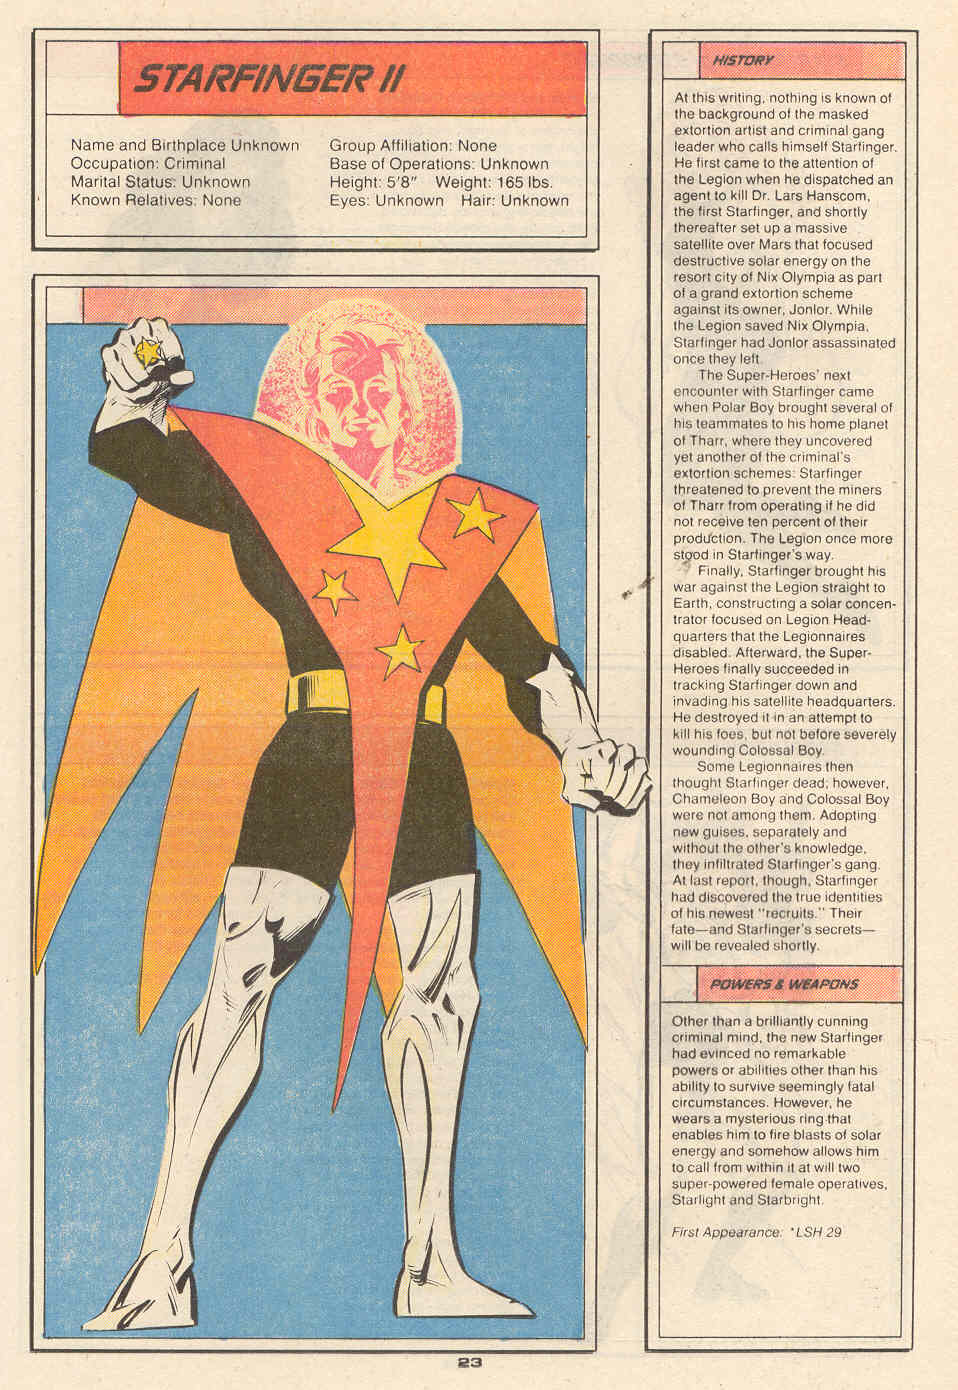 Starfinger II by Ken Steacy - Who's Who in the Legion of Super-Heroes #6